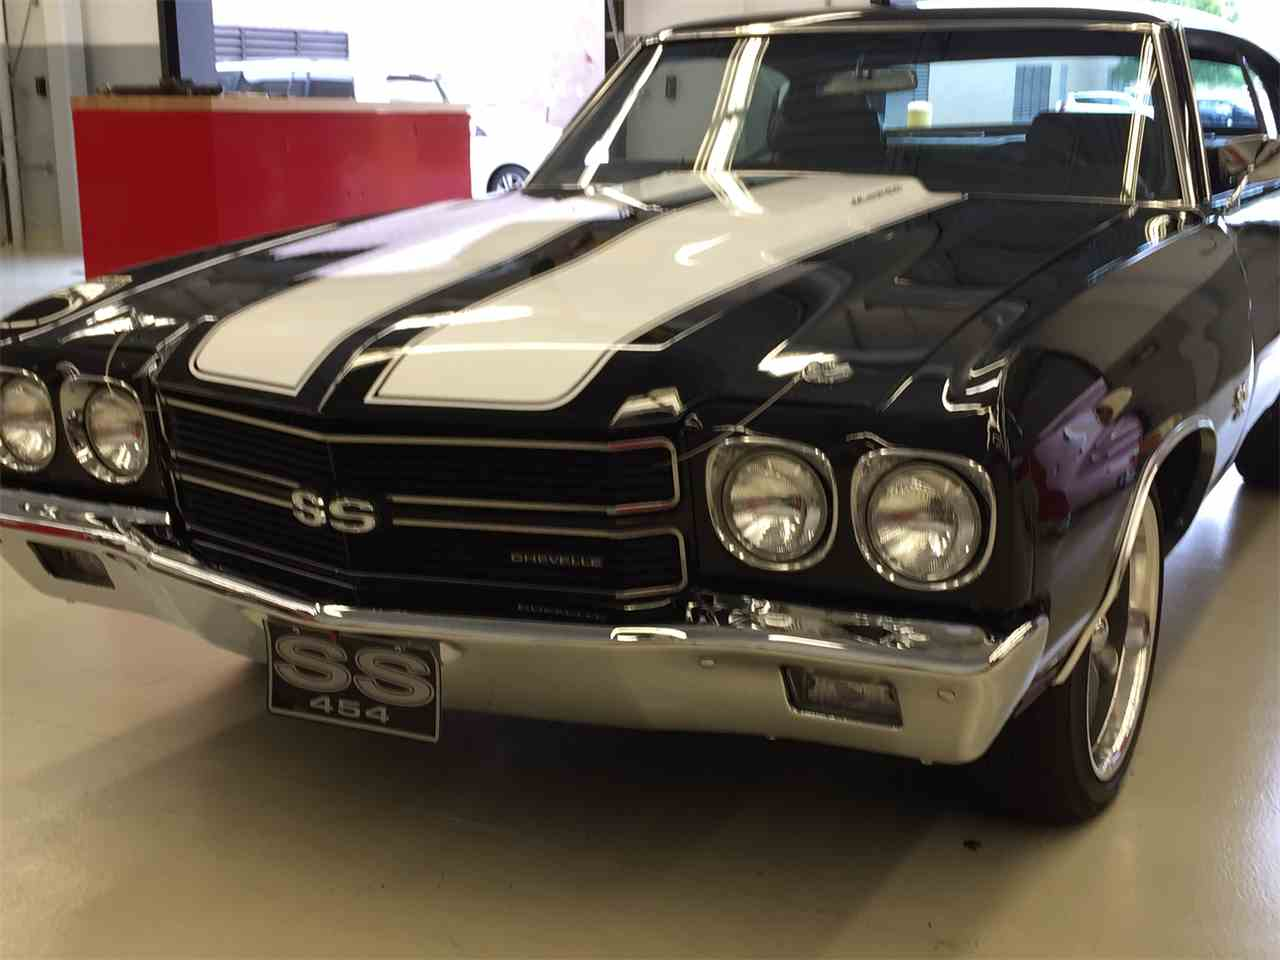 Chevelle Ss >> 1970 Chevrolet Chevelle Ss For Sale Classiccars Com Cc 967304